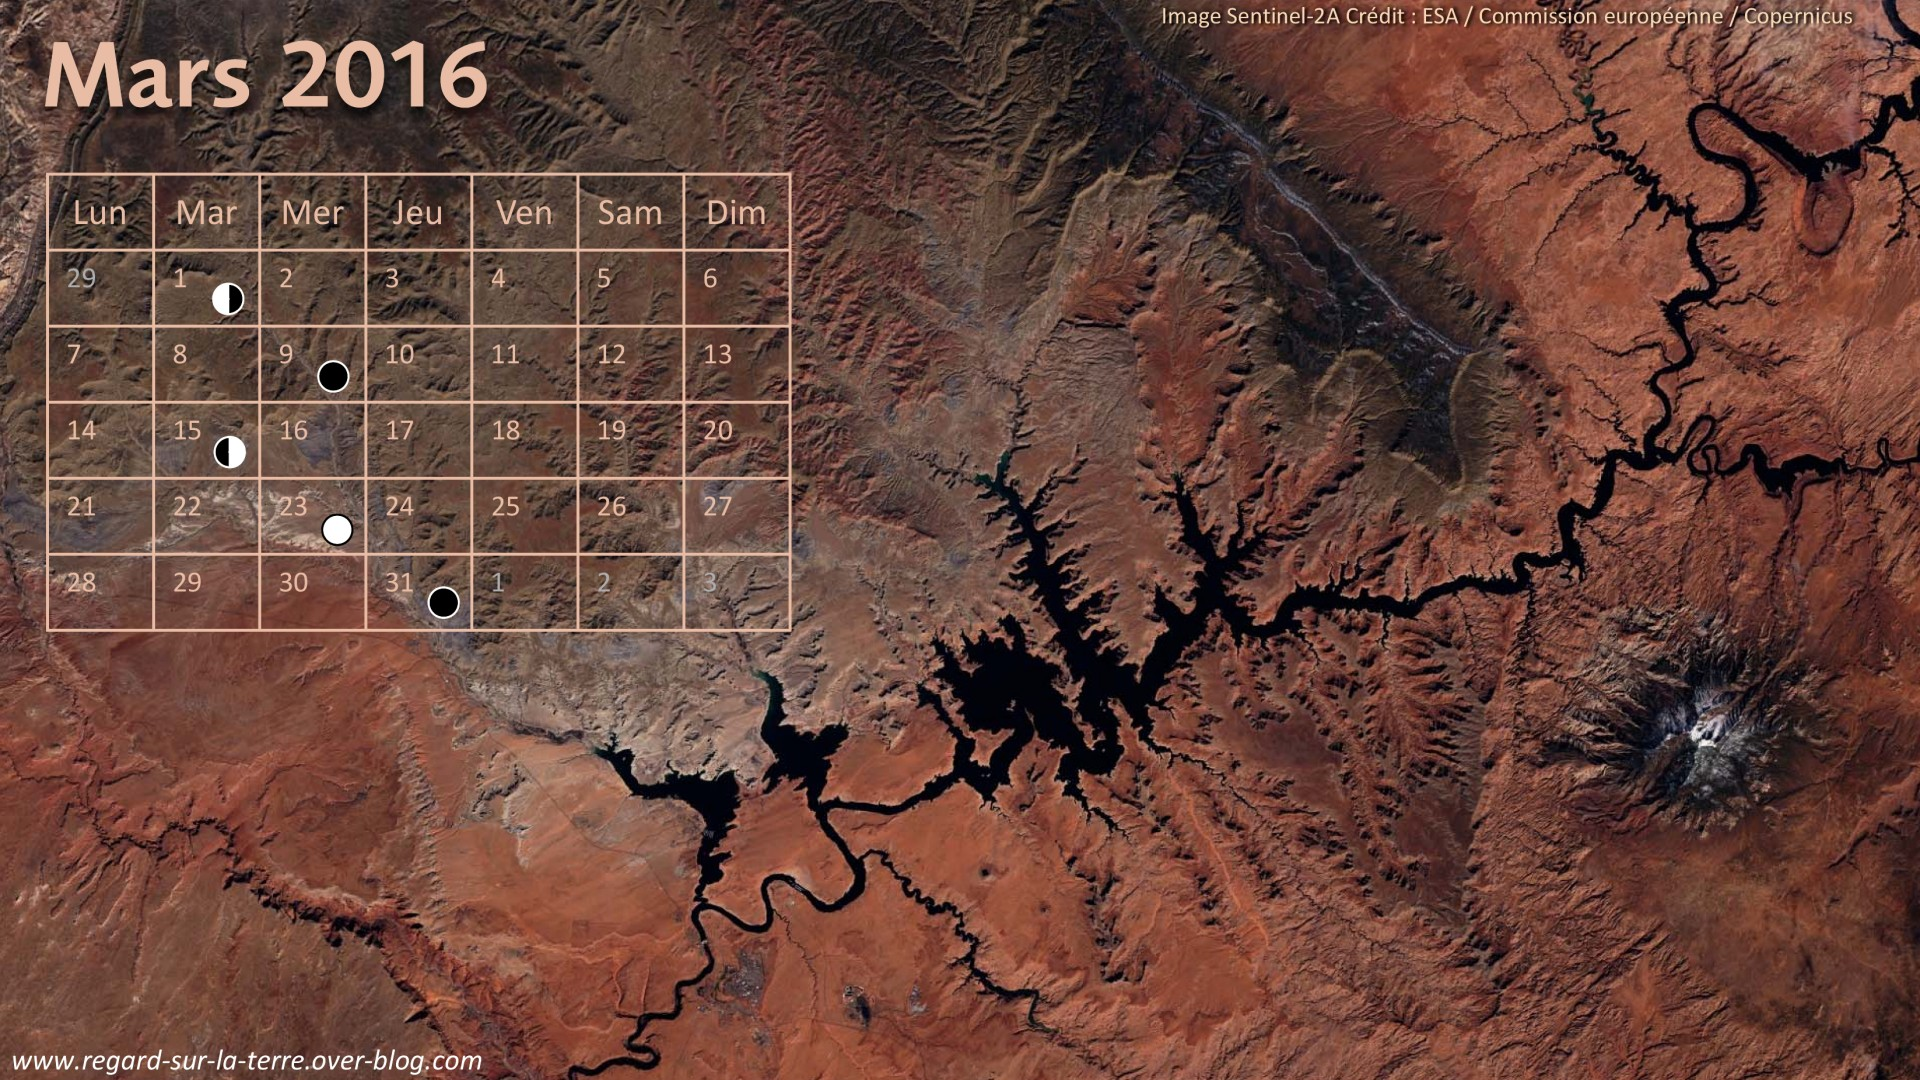 Calendrier Spatial - Mars 2016 - Colorado - Lac Powell - Grand Canyon - Sentinel-2 - satellite - ESA - Copernicus